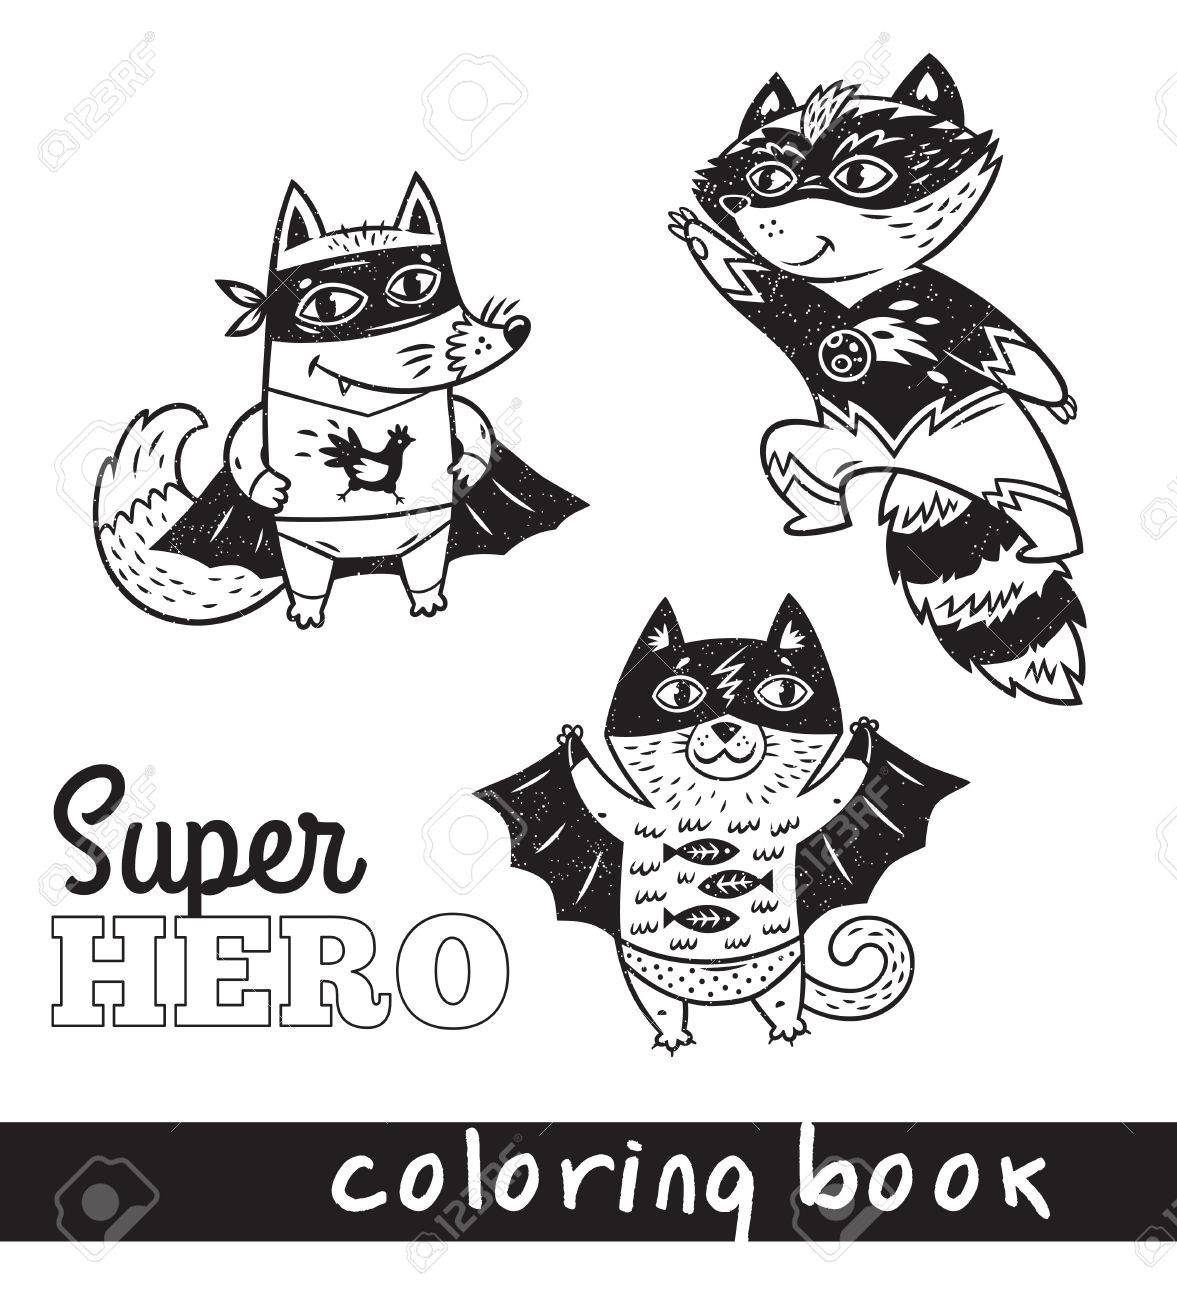 Coloring Book Page With Cartoon Comic Animals Black And White Illustration Hand Drawn Fox Cat Raccoon In Superheroes Costume